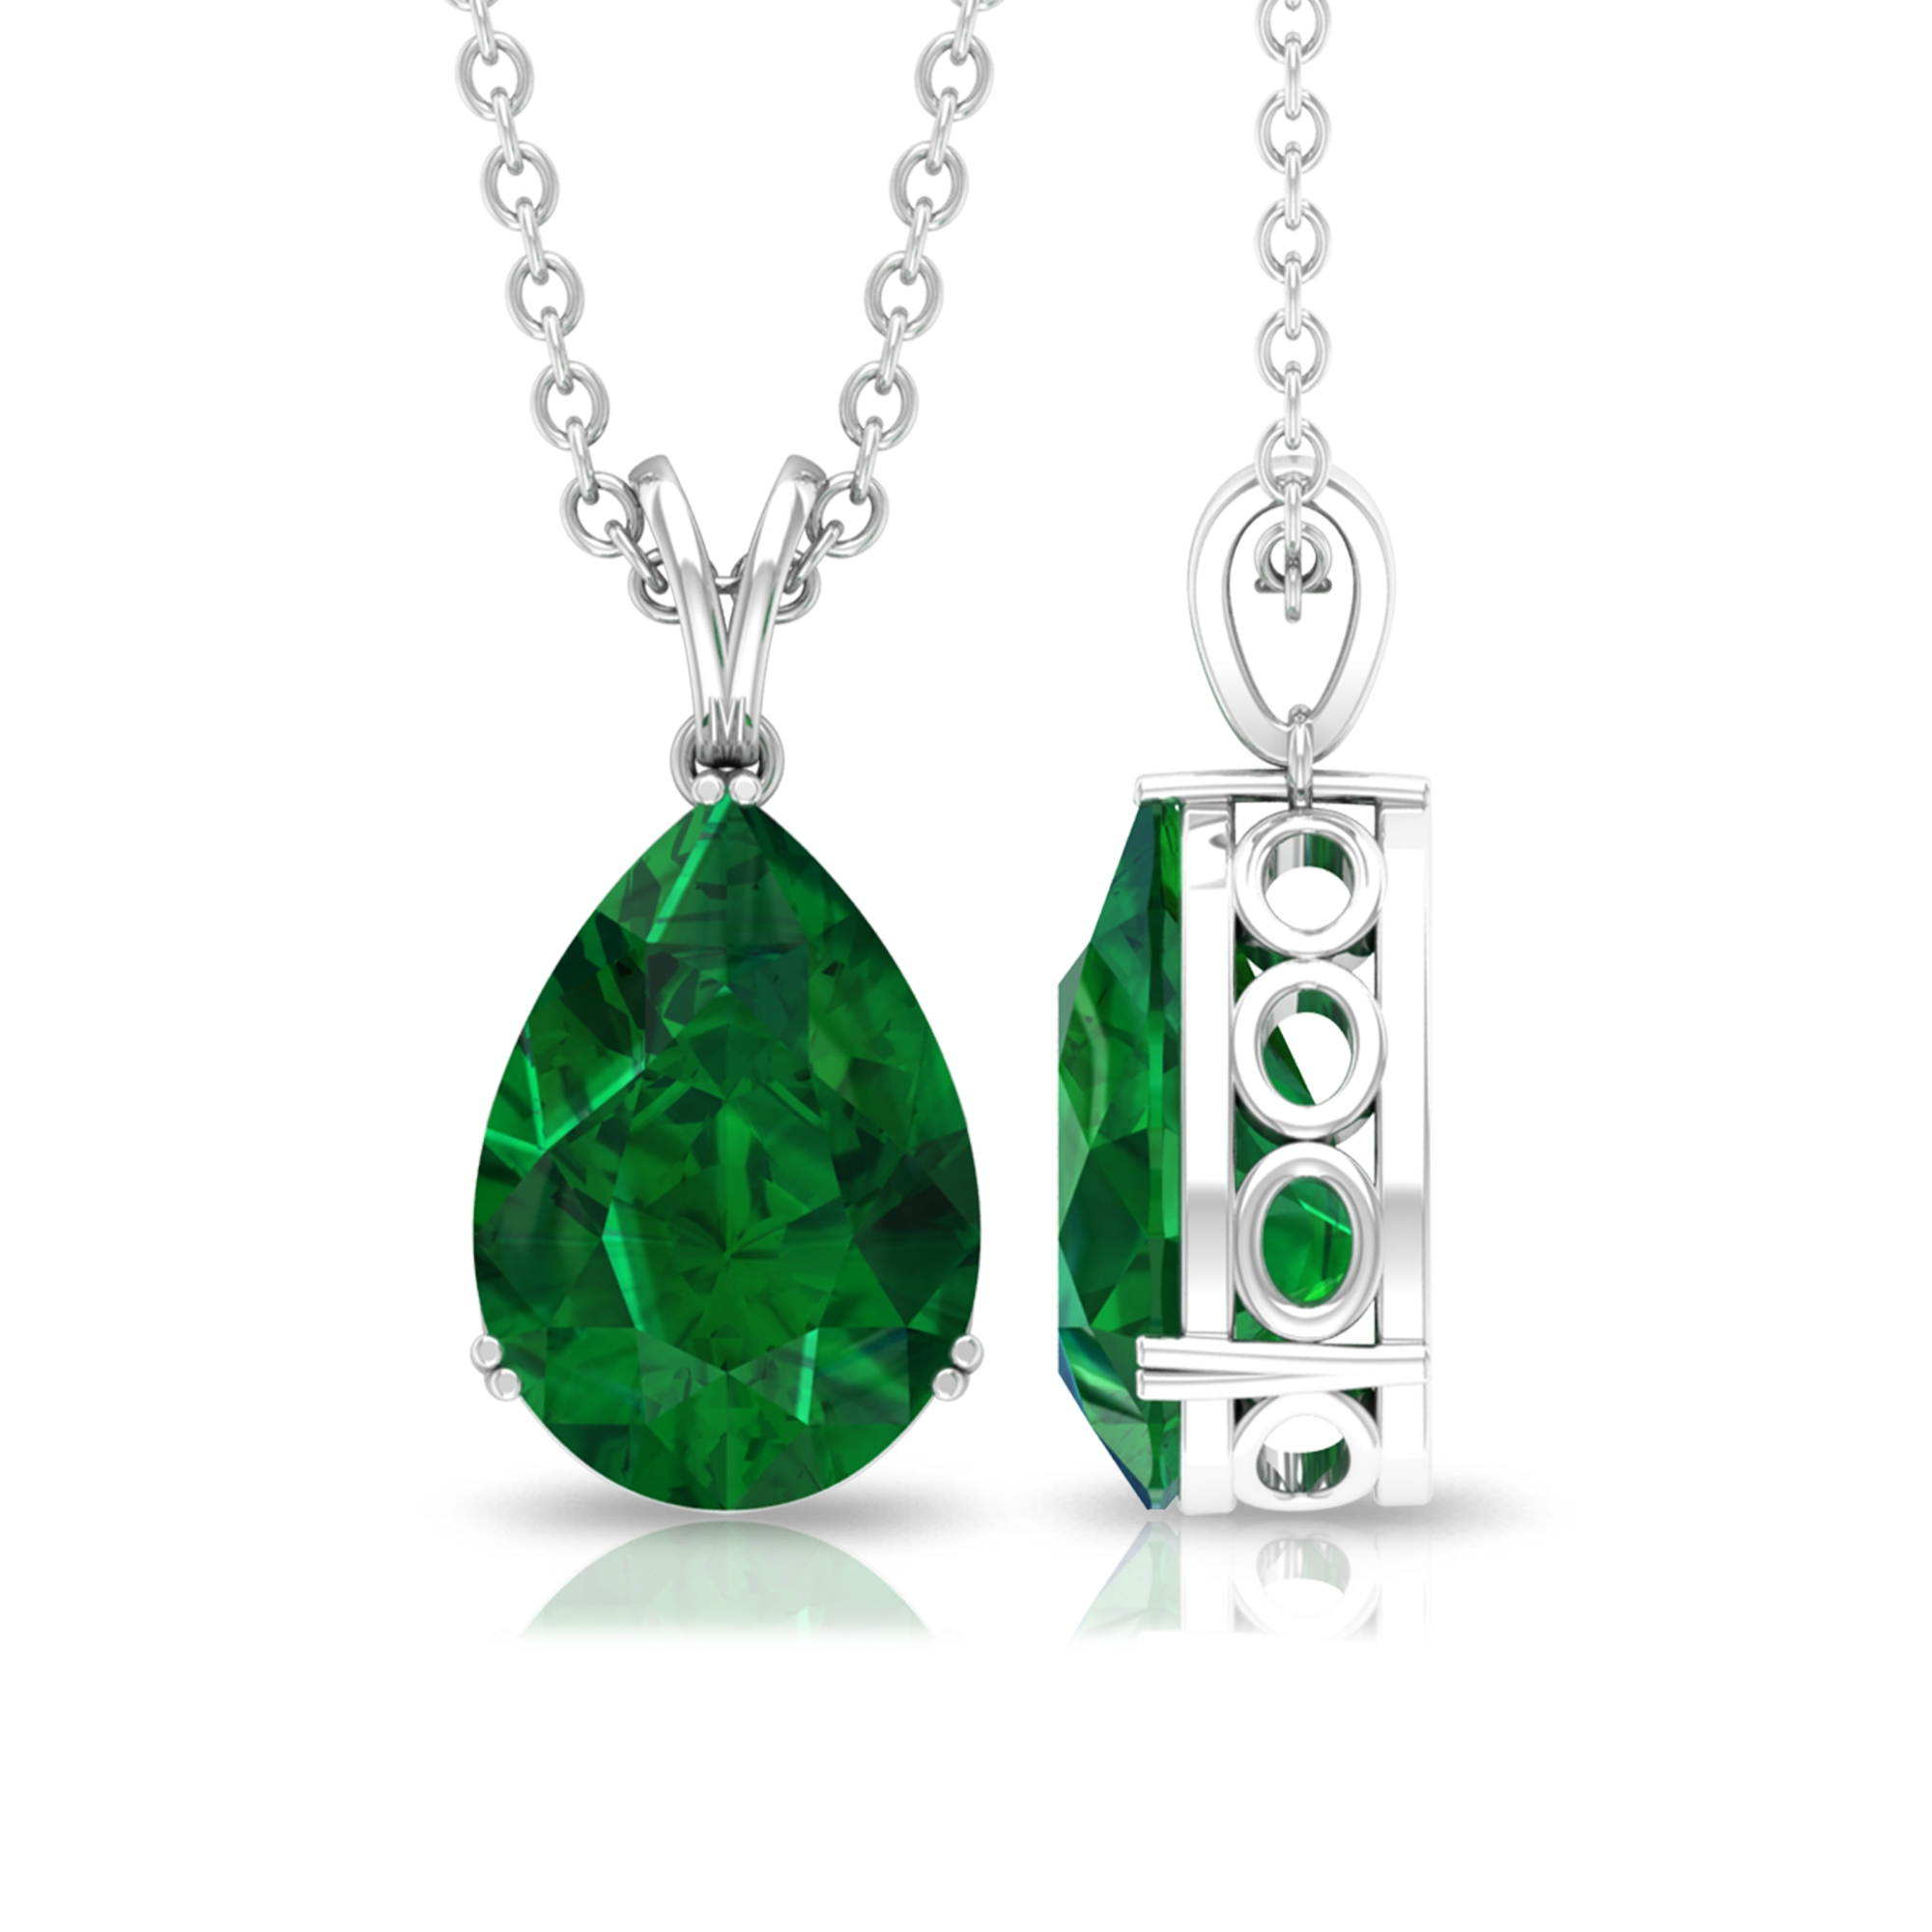 2 CT Pear Cut Emerald Pendant in Double Prong Set with Rabbit Ear Bale Style